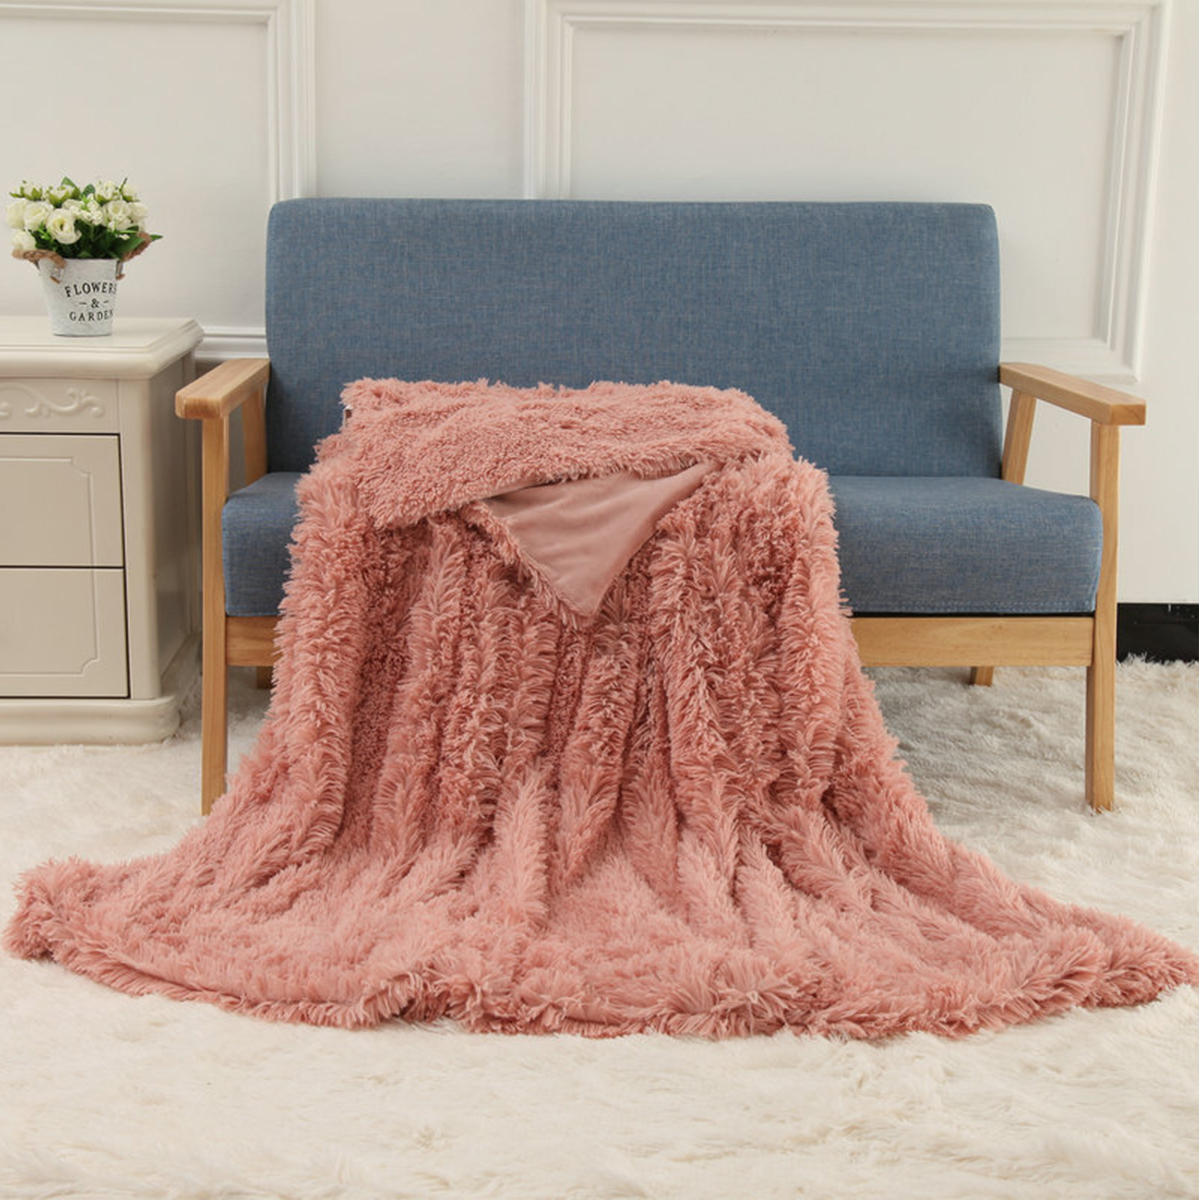 160x200cm / 130x160cm MECO Large Luxury Shaggy Blankets Mit Herz Teppich Kunstfell Long Pile Throw Schlafsofa Soft Warme Decke Shaggy Fluffy Rug - 6